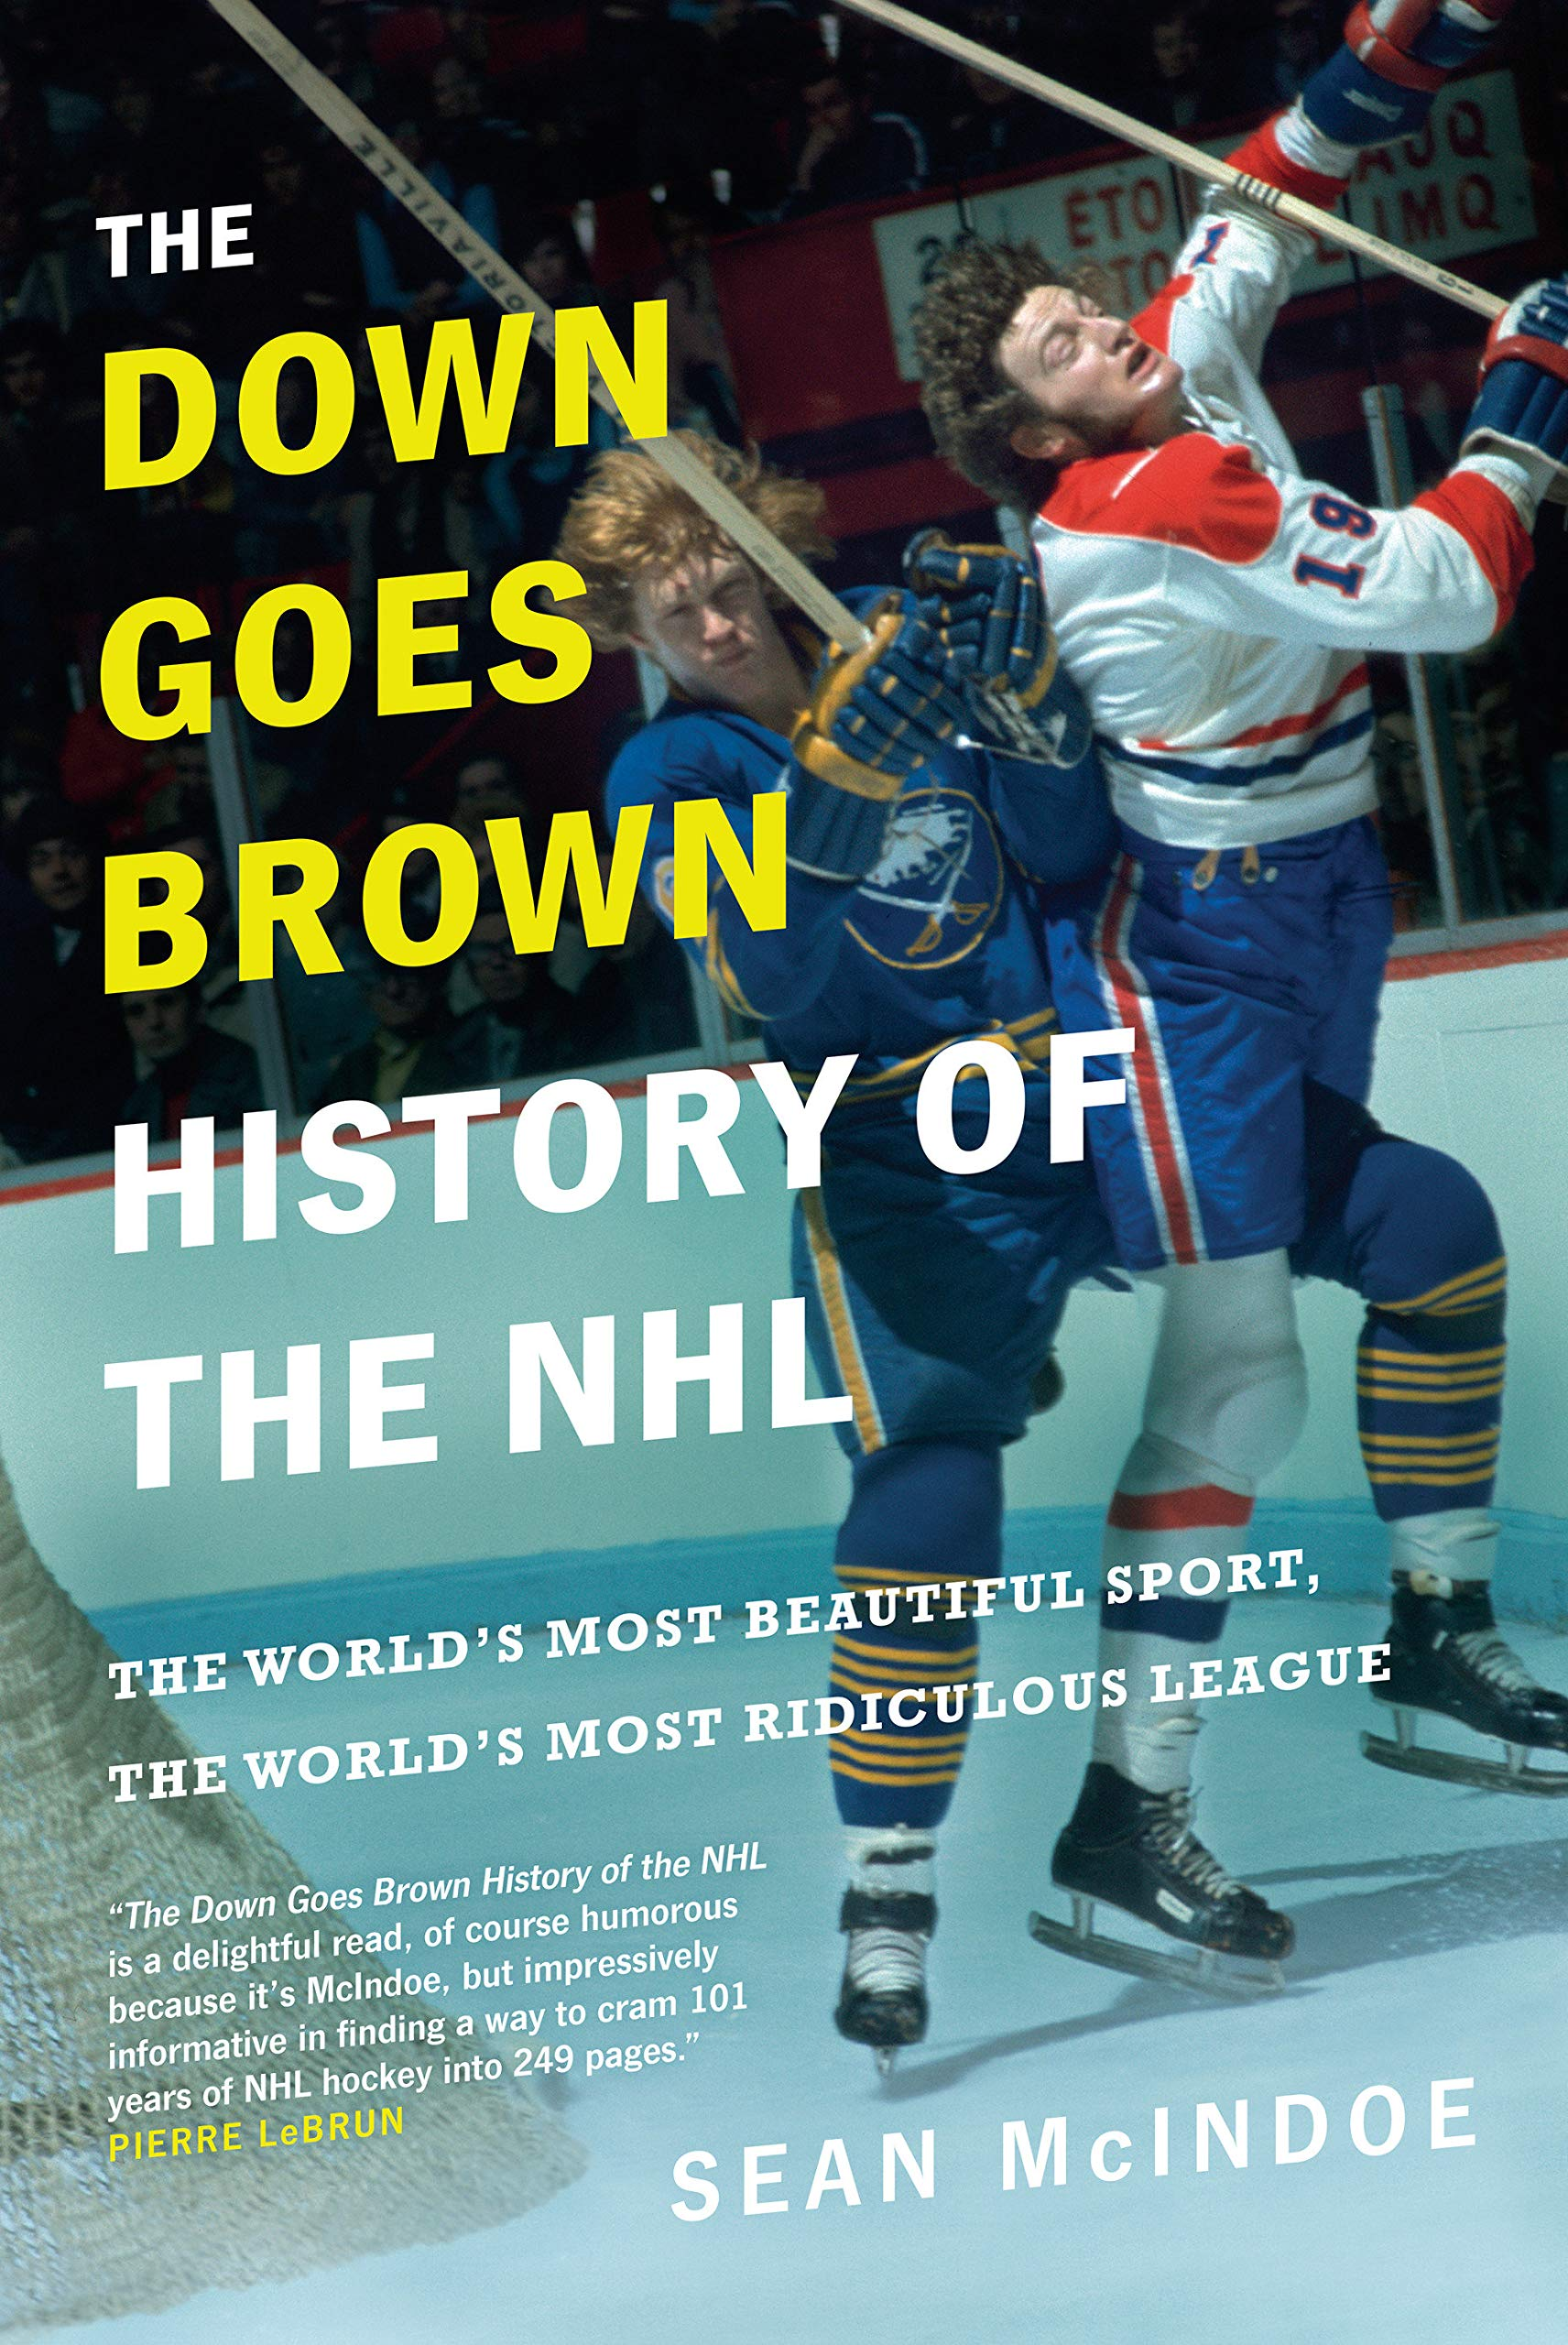 The Down Goes Brown History of the NHL: The World's Most Beautiful